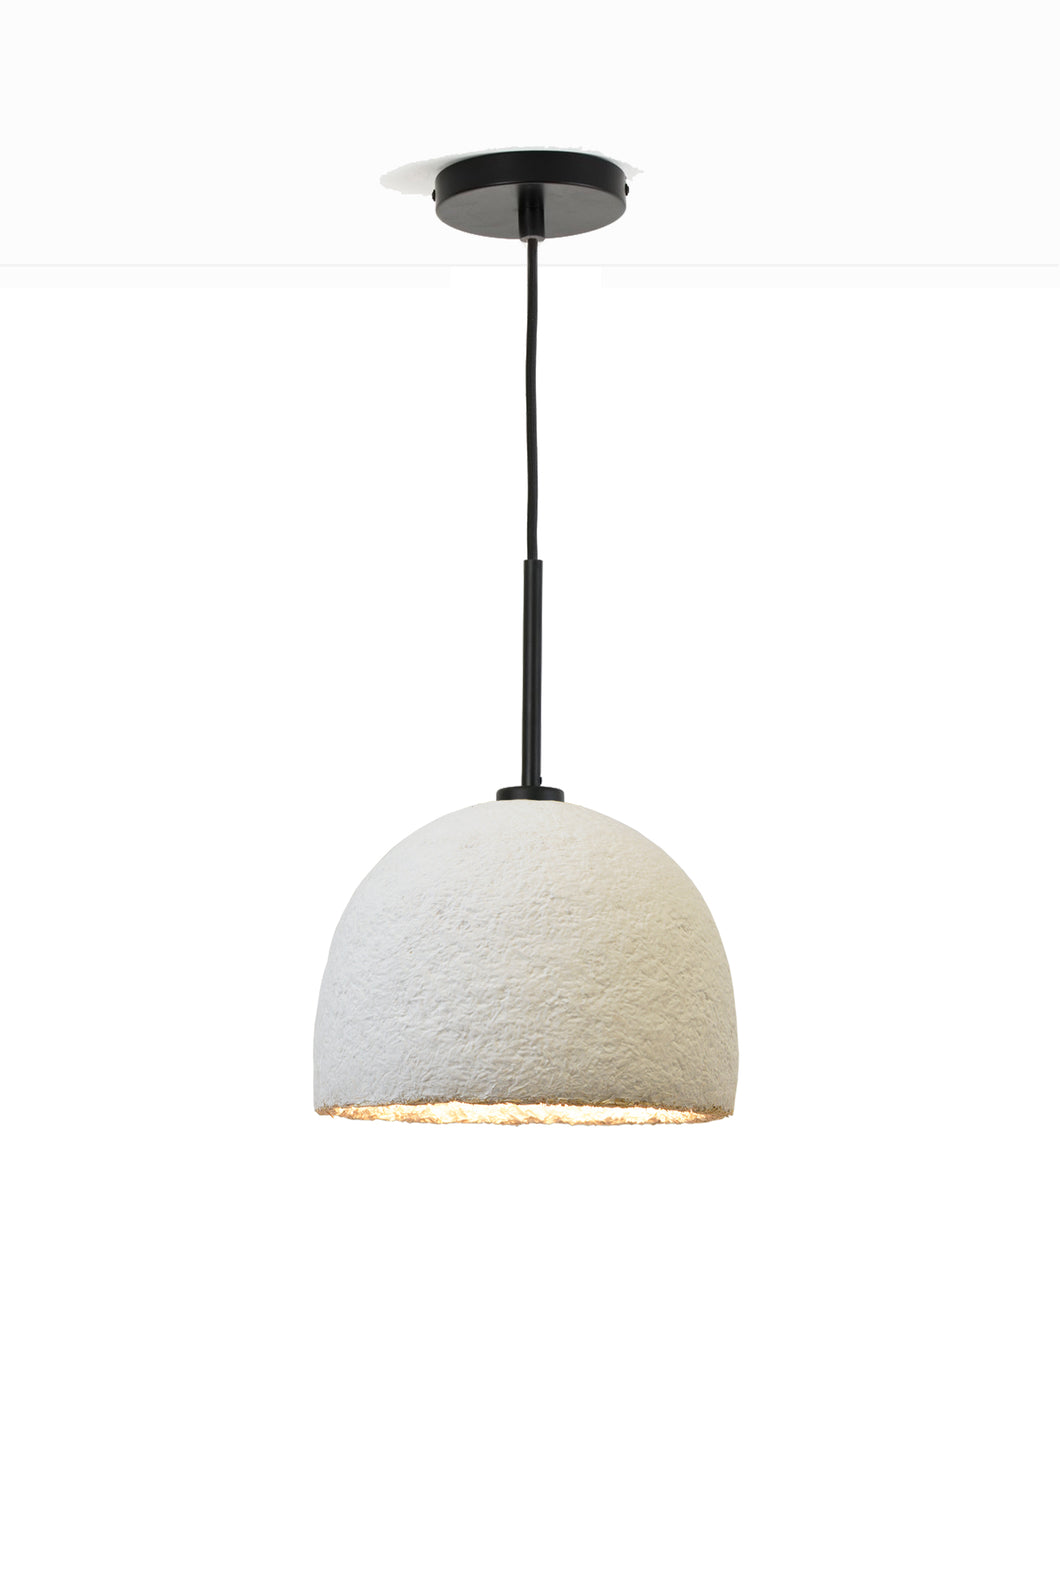 MushLume Cup Light Pendant